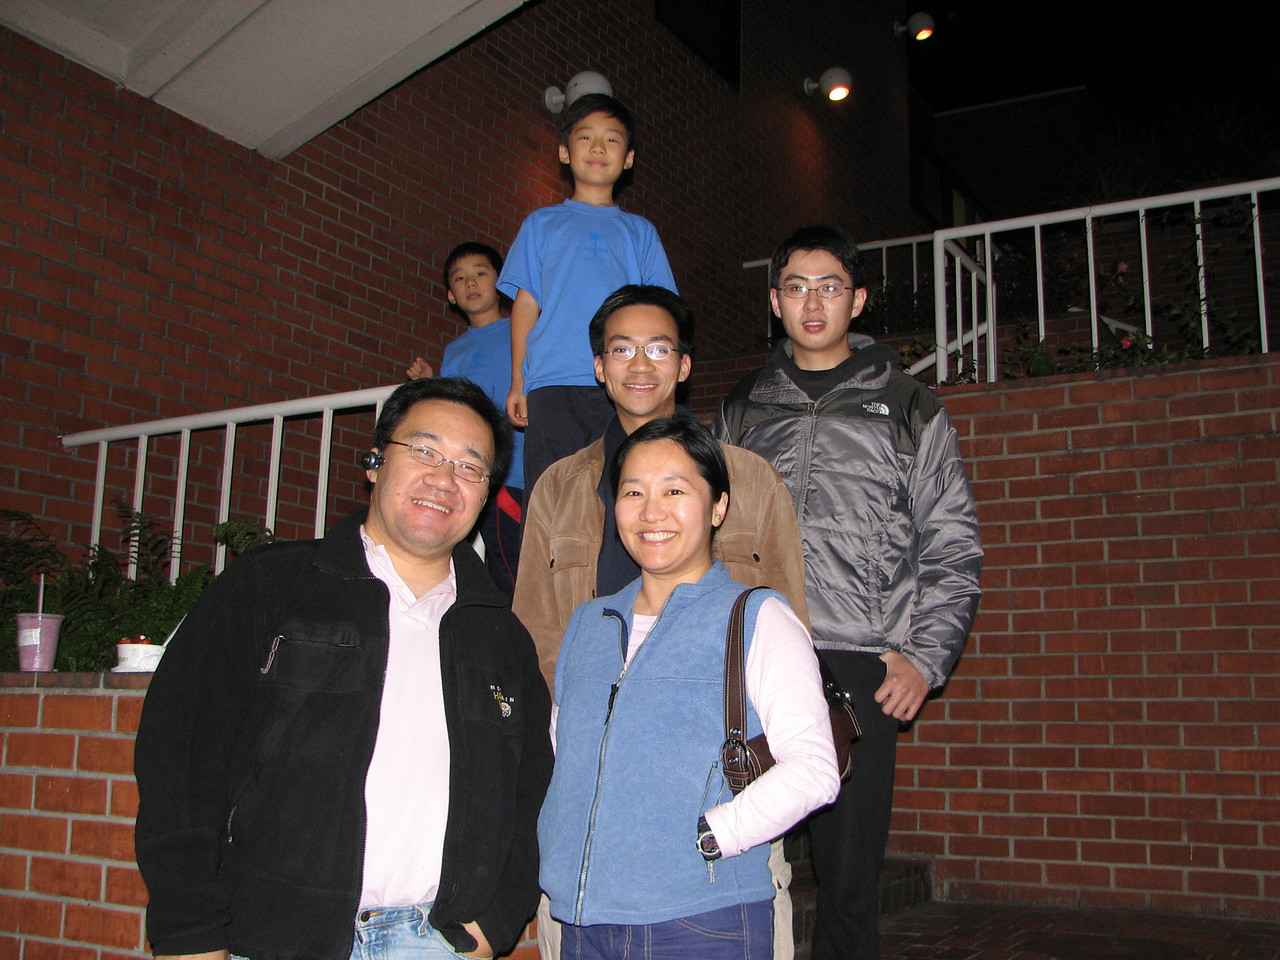 2007 02 21 Wed - The Lee's, Ben Yu, & visiting from Taiwan cousin Shan Zen Yang @ UCLA Pinkberry 2